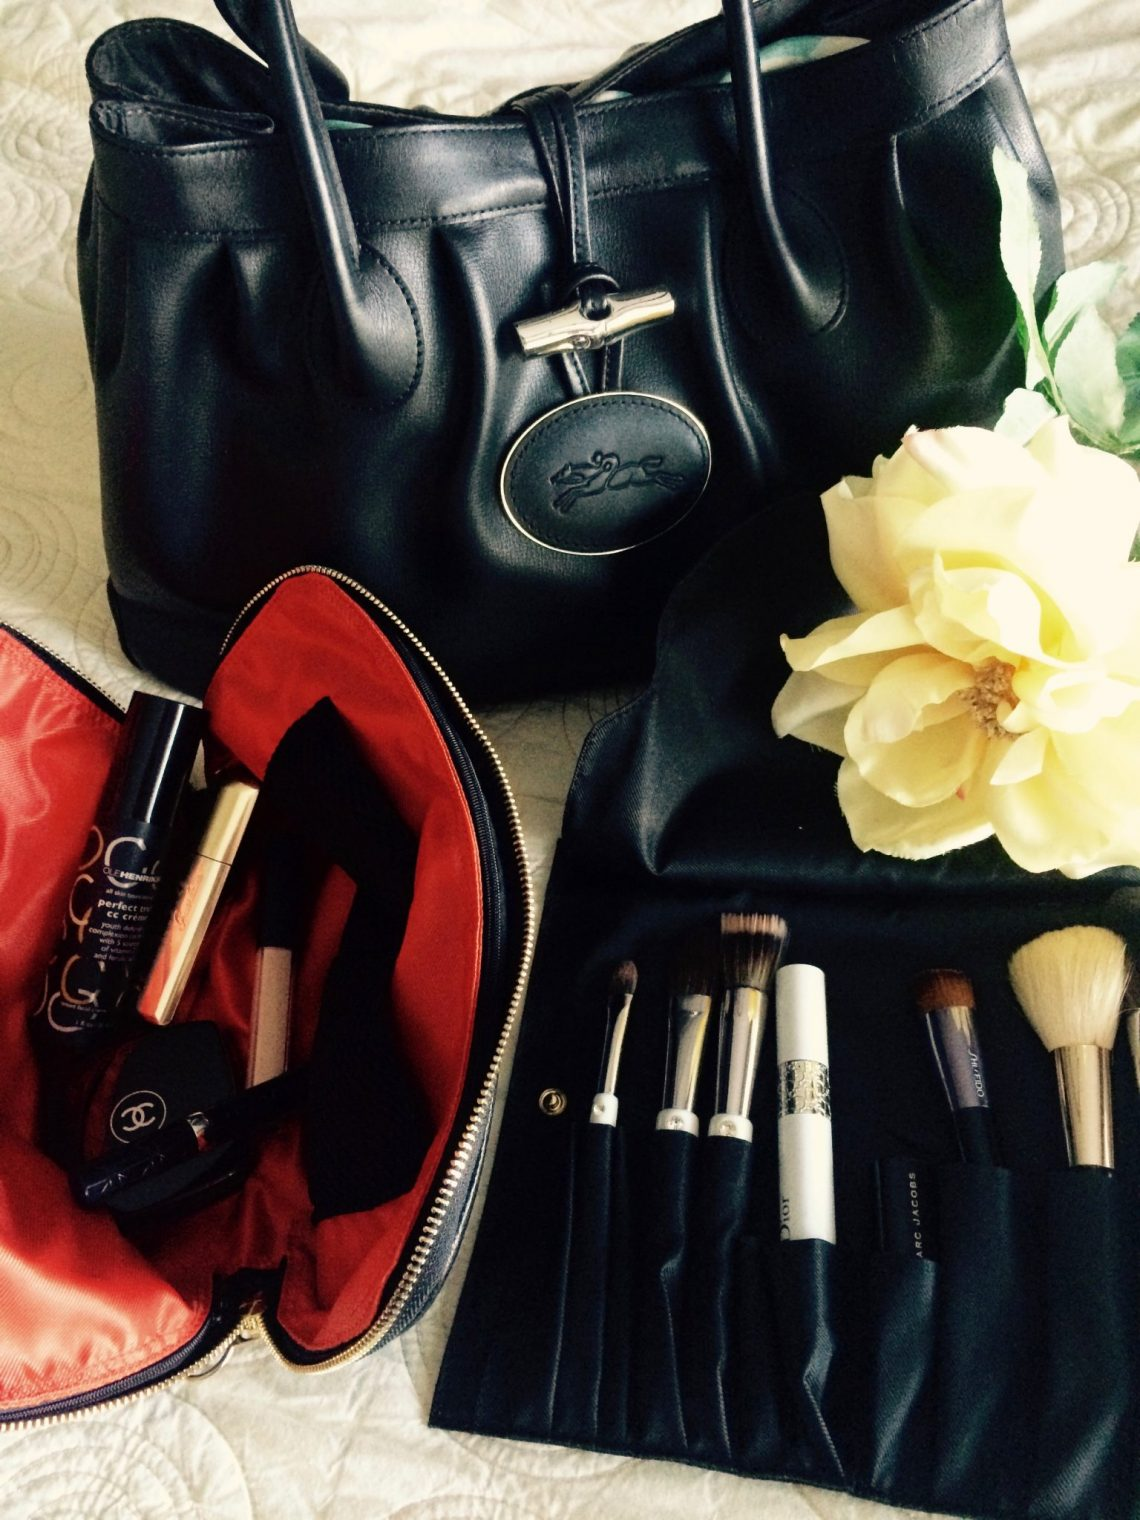 Kusshi makeup bag and brush holder Little Luxuries: Kusshi Improves the Makeup Bag EAT LOVE SAVOR International luxury lifestyle magazine and bookazines